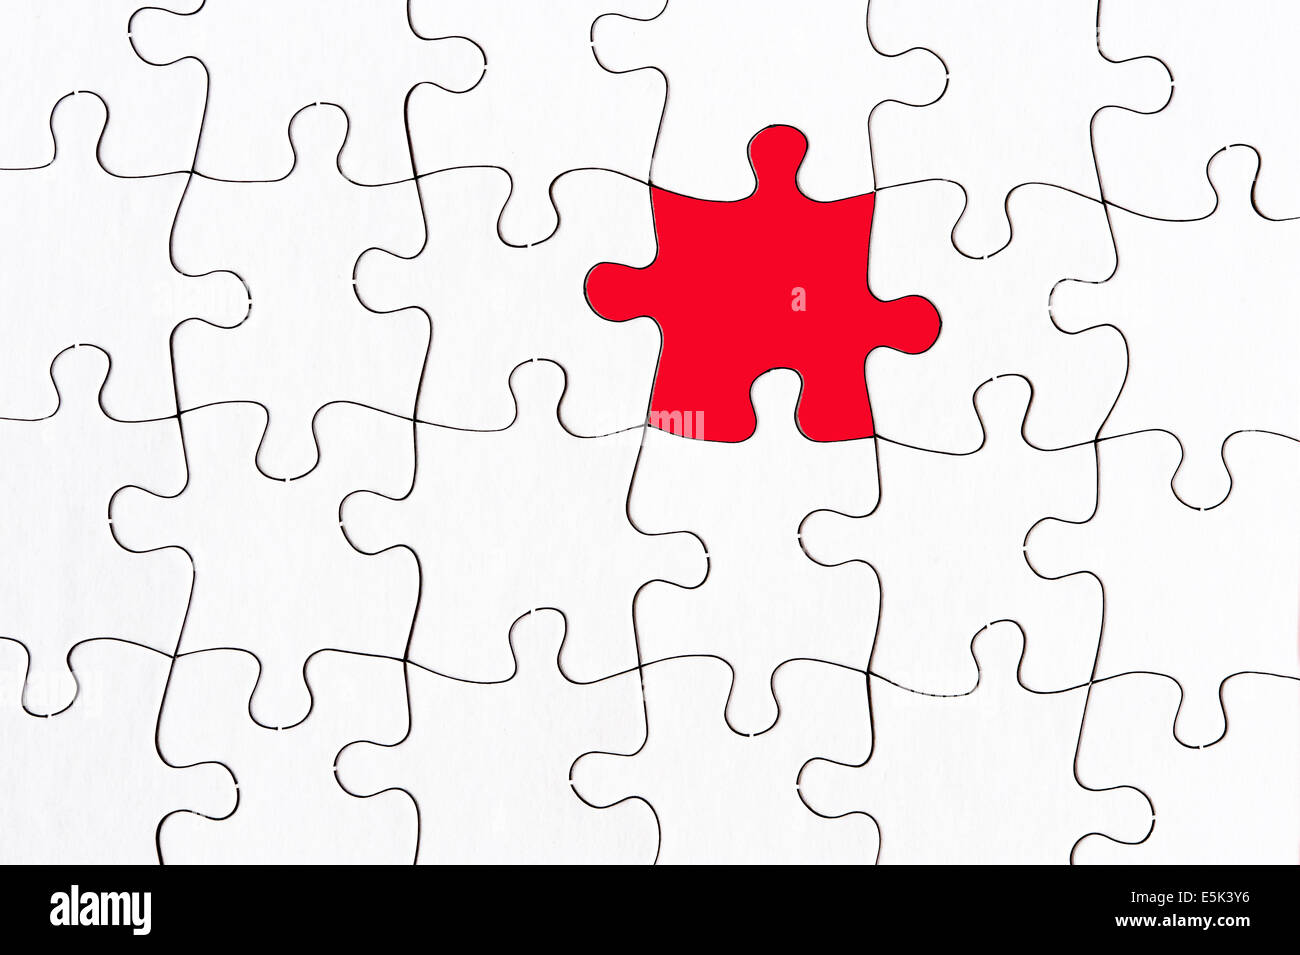 blank white jigsaw with one red piece stand out from the crowd concept - Stock Image